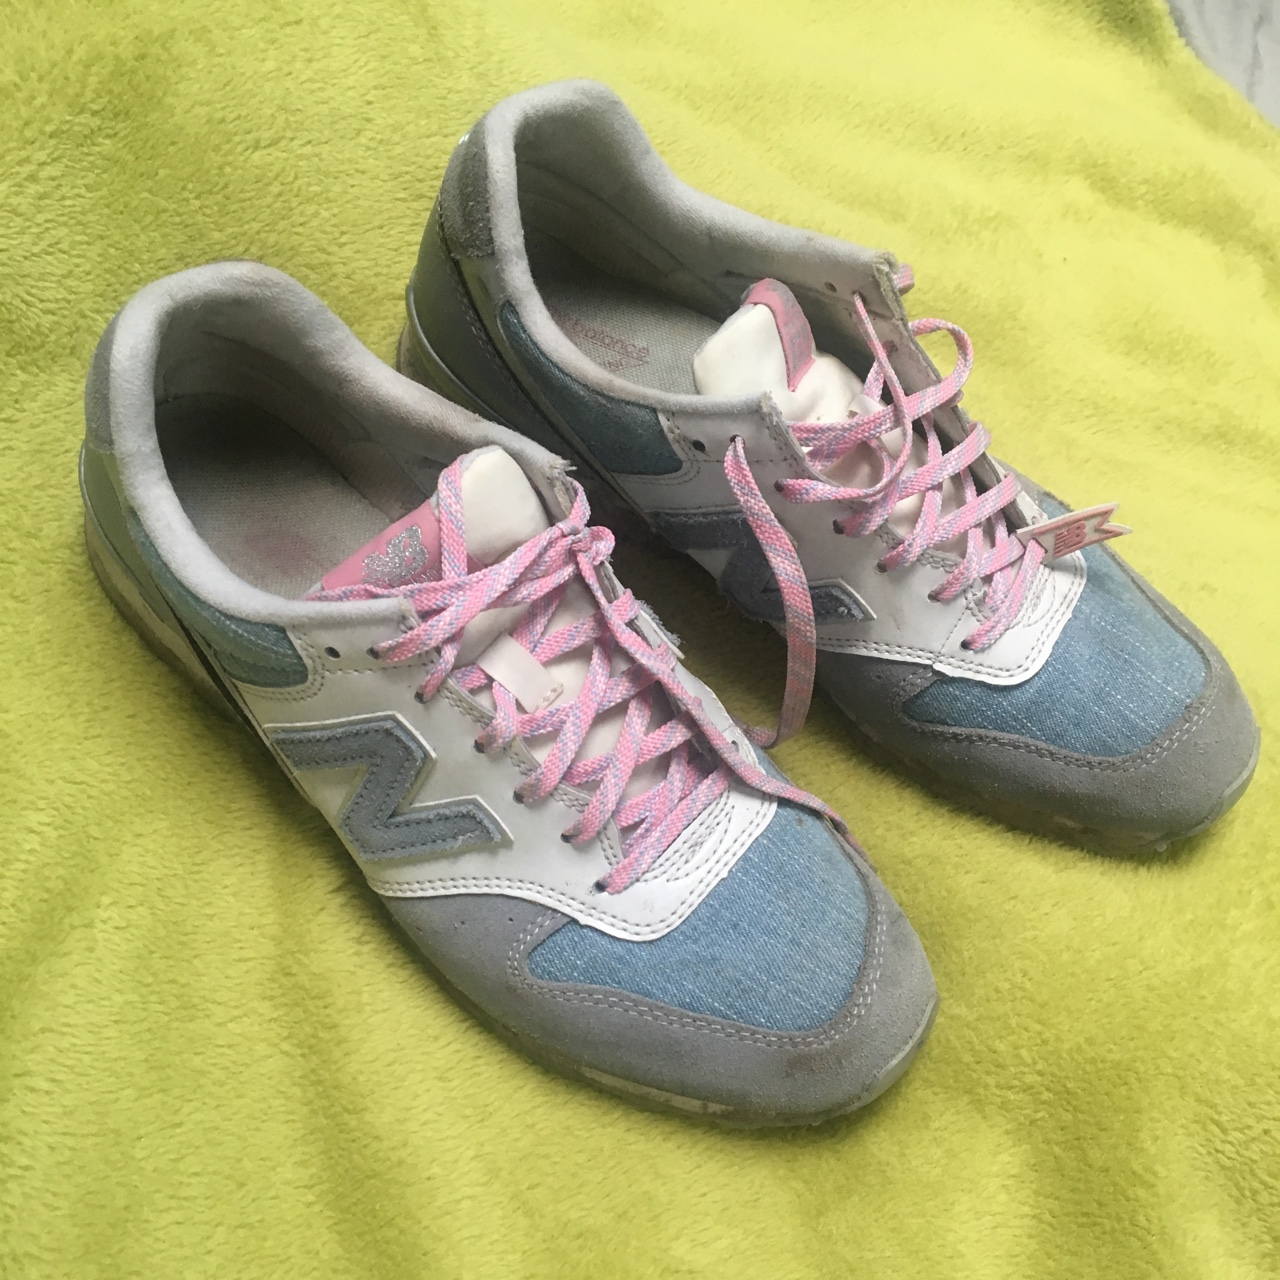 info for 73c26 889dd New balance 996 denim and pink shoes, super cute... - Depop